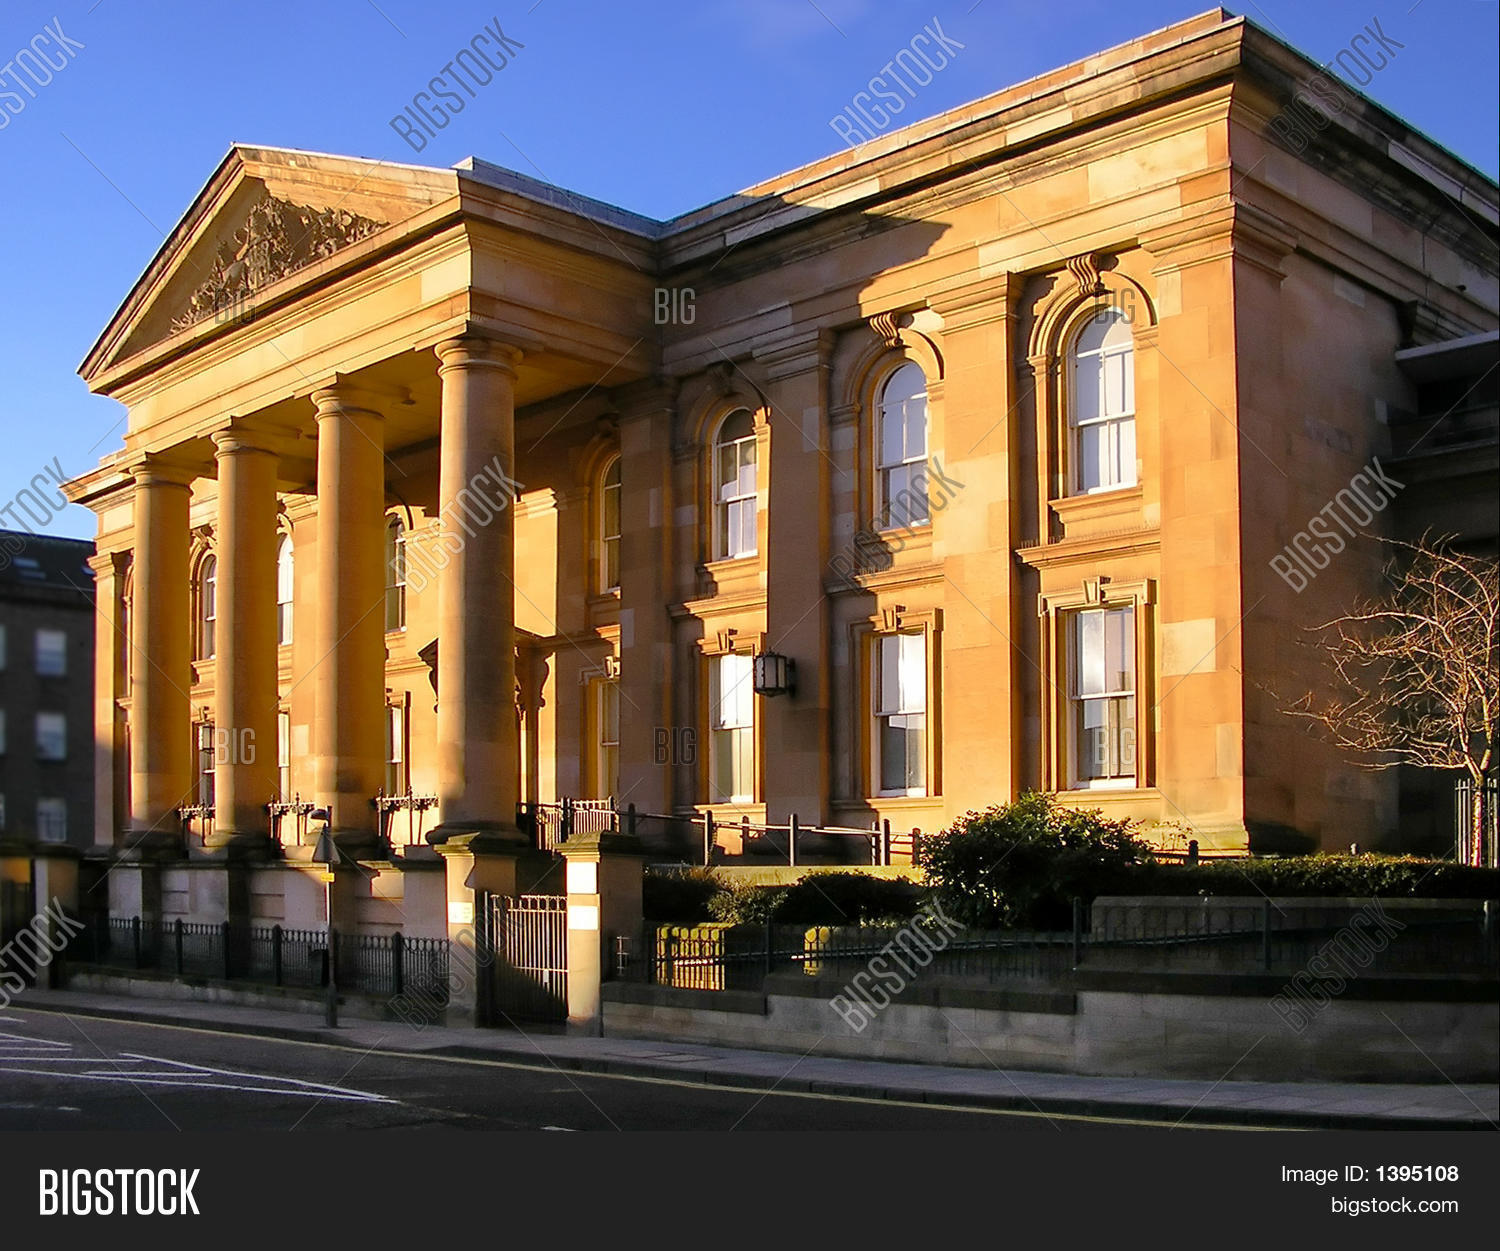 Classic building image photo bigstock for Classic builders